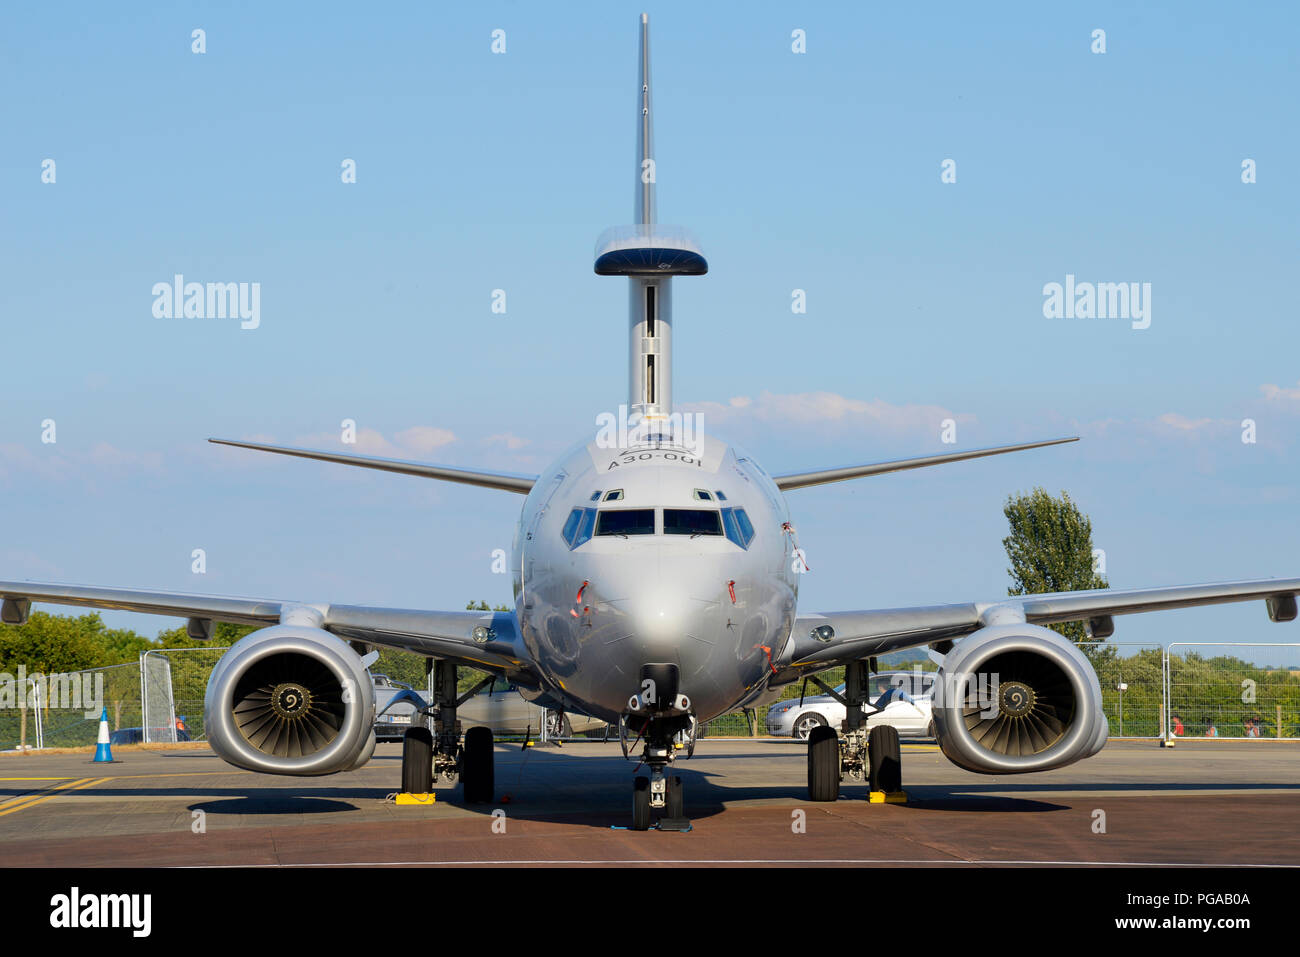 Boeing 737 AEW&C  Royal Australian Air Force RAAF 'Project Wedgetail' designated E-7A Wedgetail at RIAT airshow RAF Fairford - Stock Image